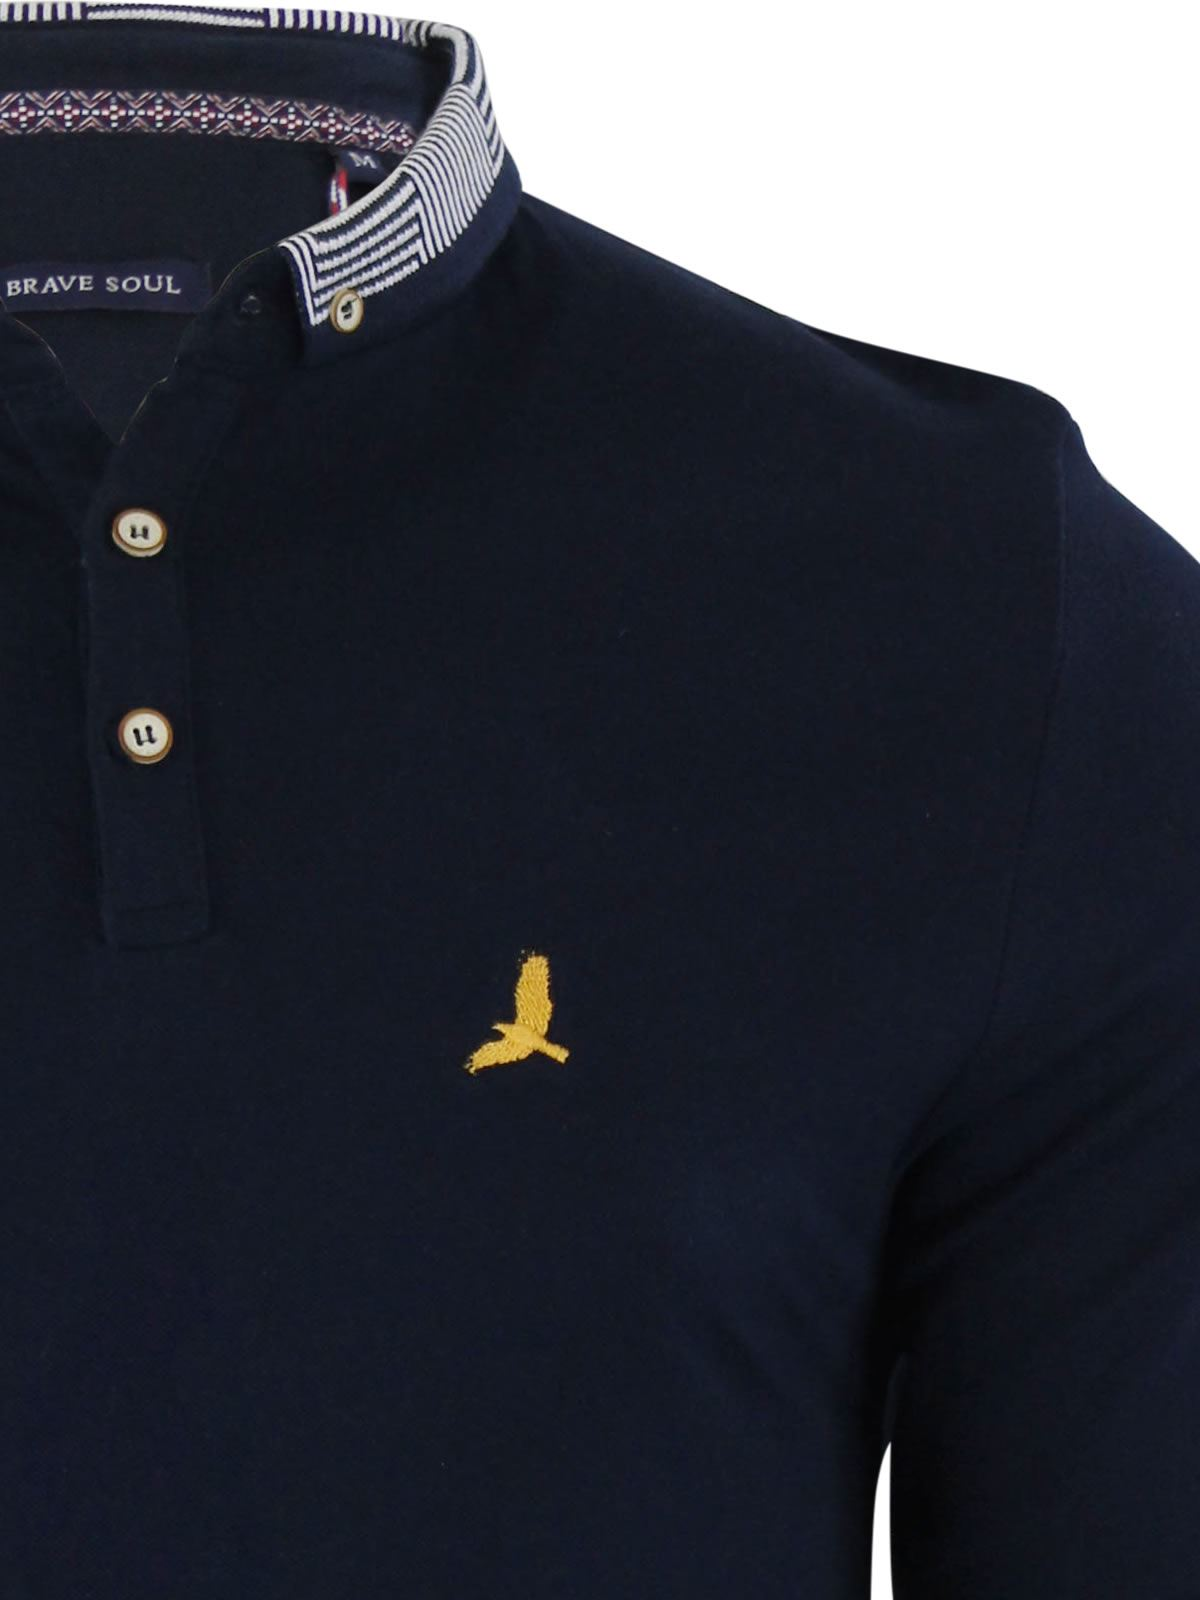 Brave-Soul-Mens-Polo-Shirt-Long-Sleeve-Collared-Top-In-Various-Styles thumbnail 104